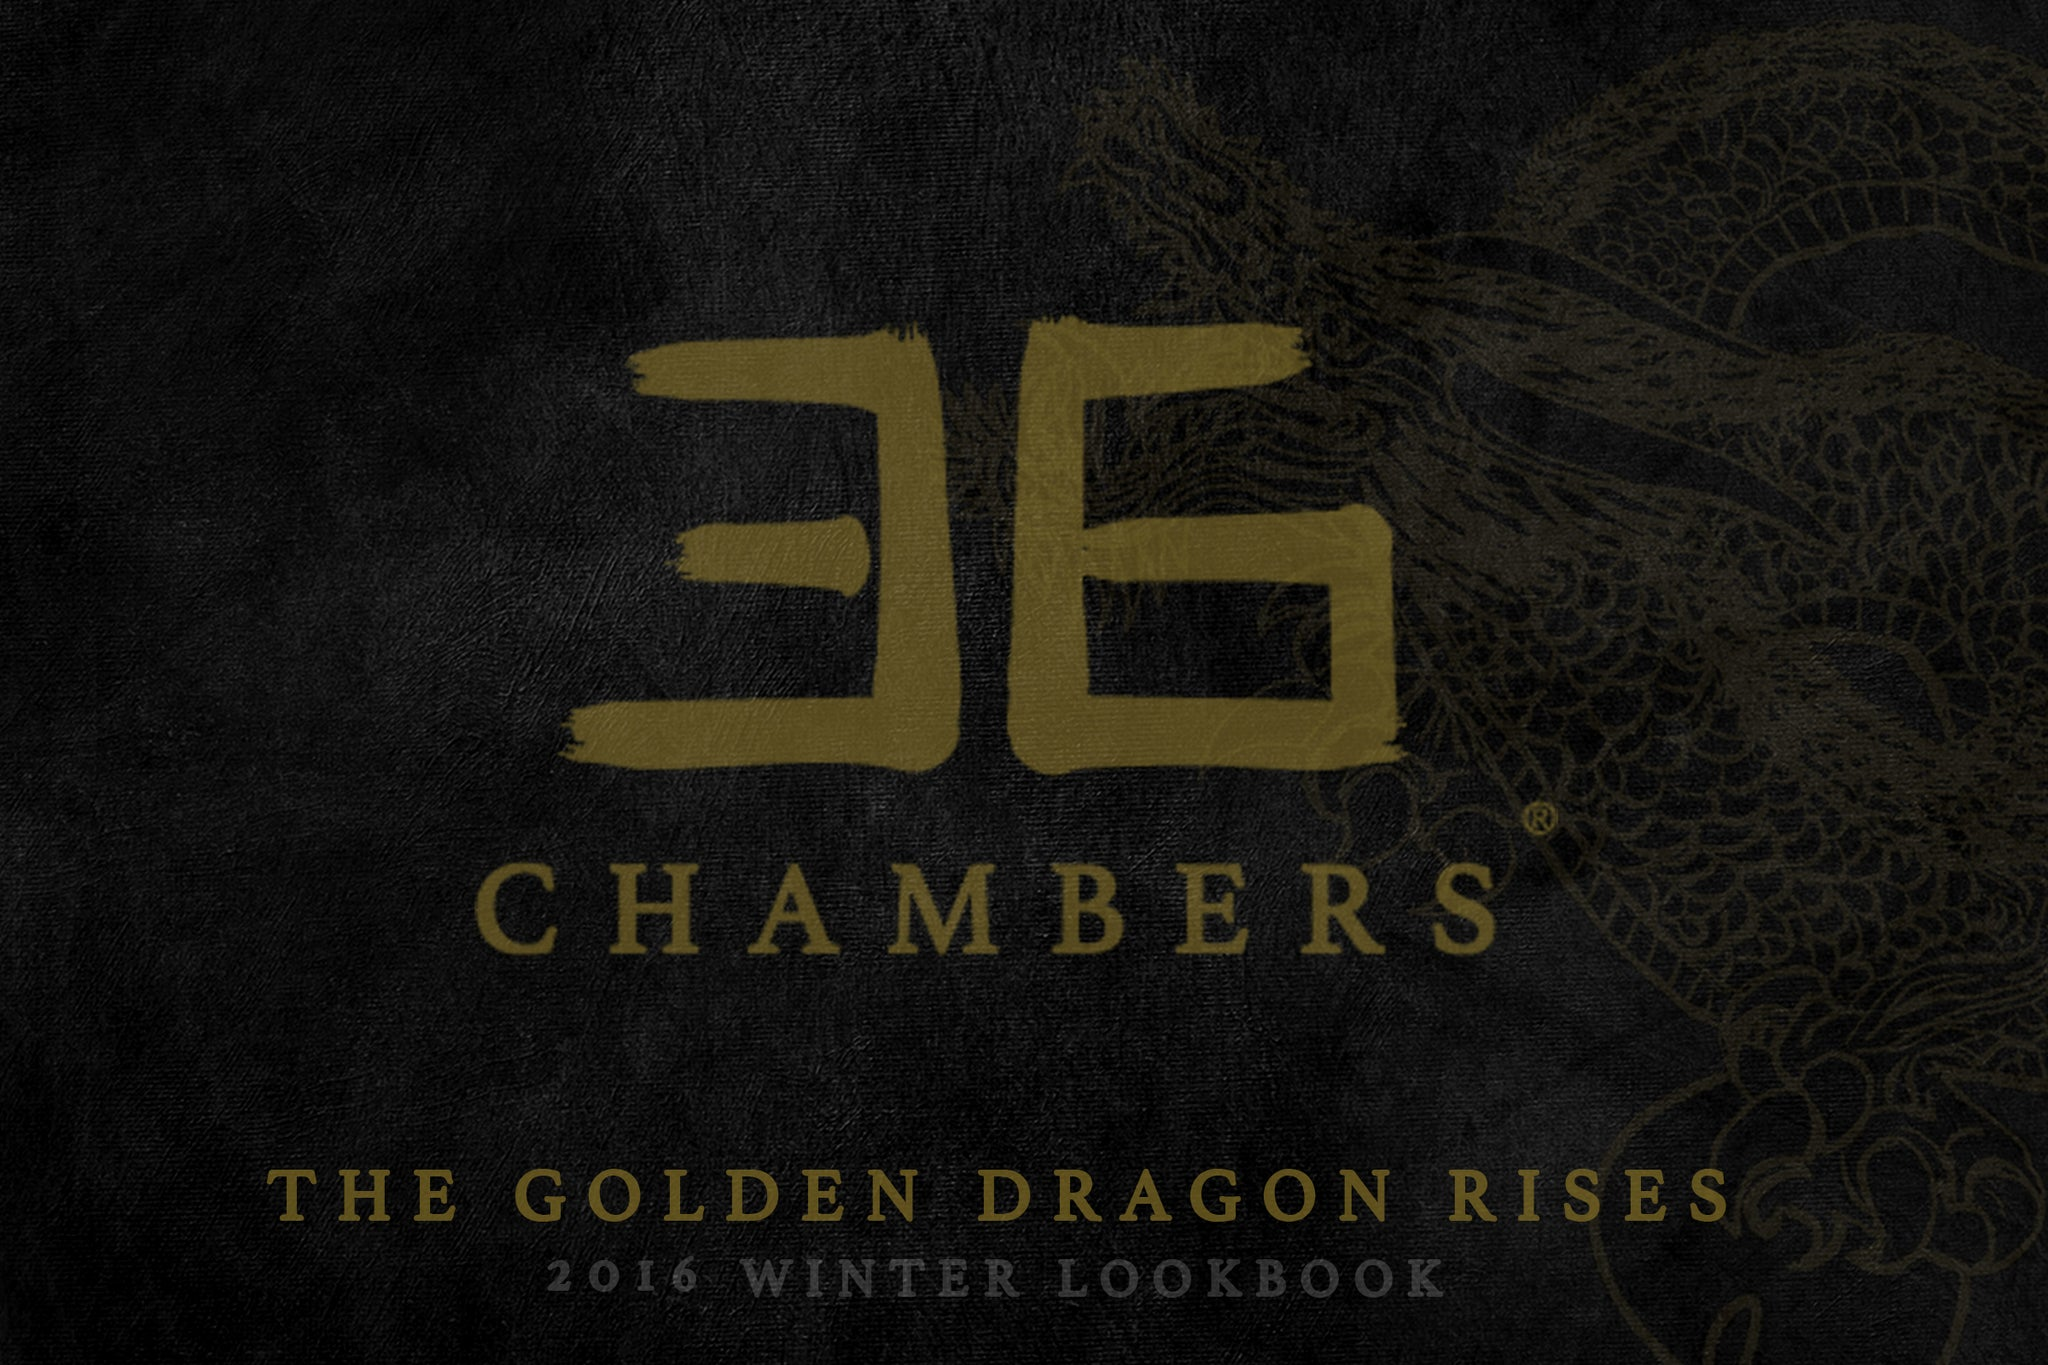 36 Chambers - The Golden Dragon Rises - 2016 Winter Lookbook